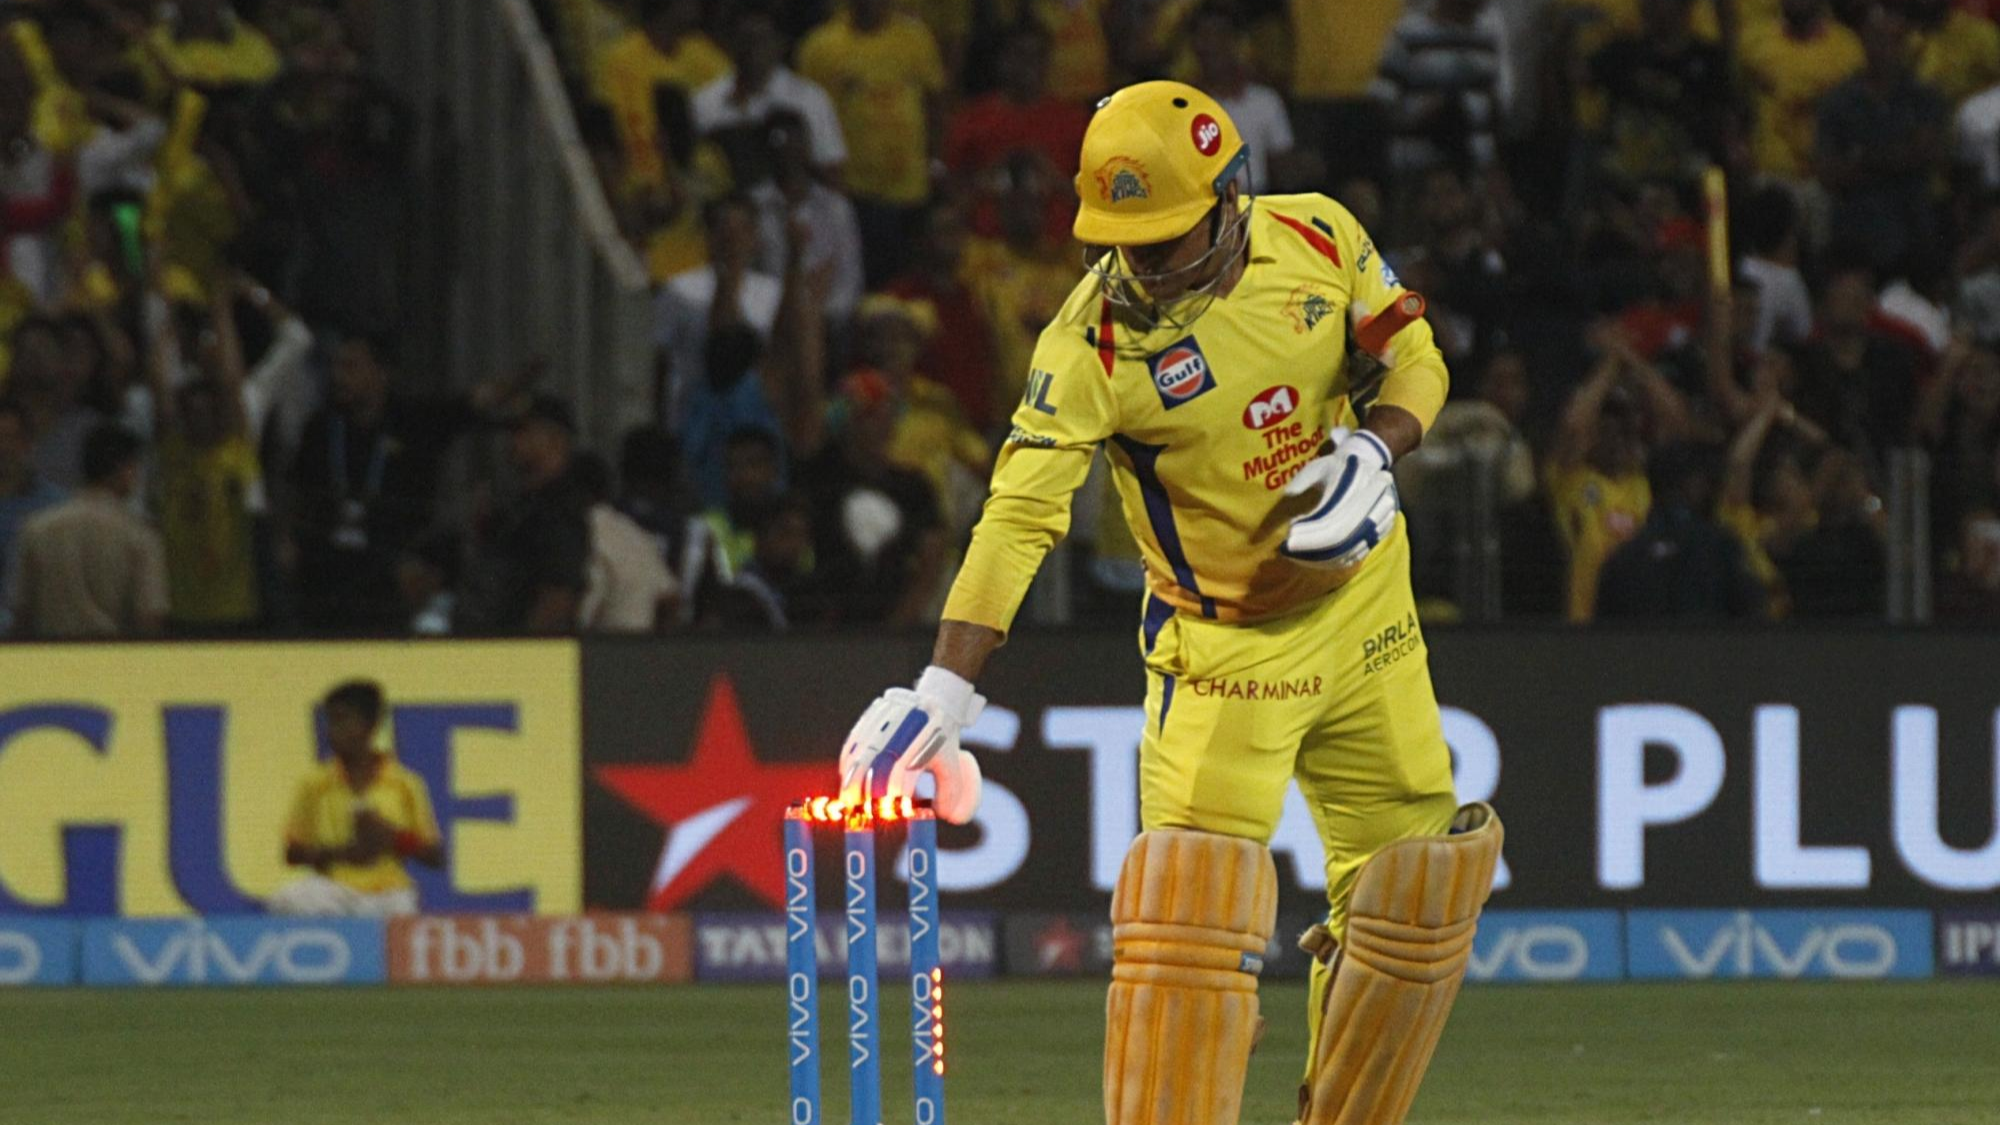 IPL 2018 : Match 56, CSK vs KXIP - Statistical Highlights